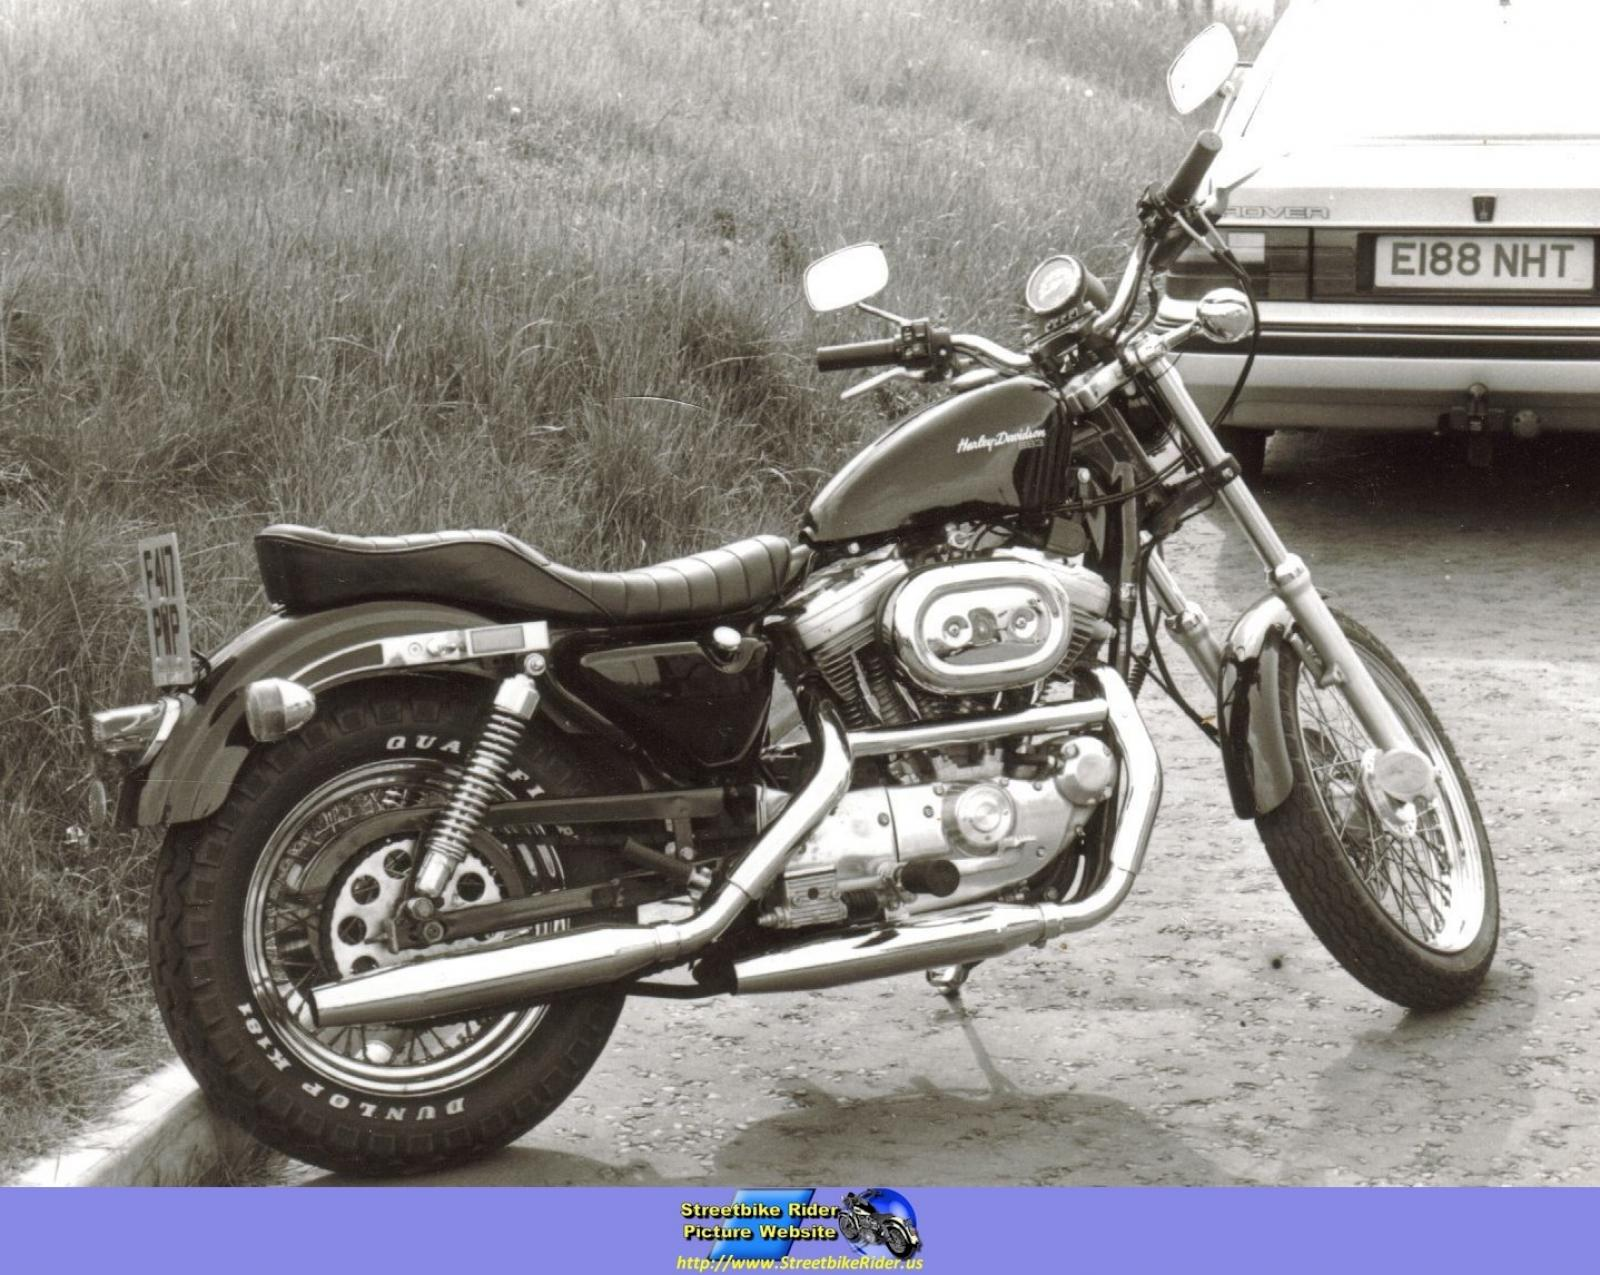 1988 Harley-Davidson XLH Sportster 1200 (reduced effect) #3